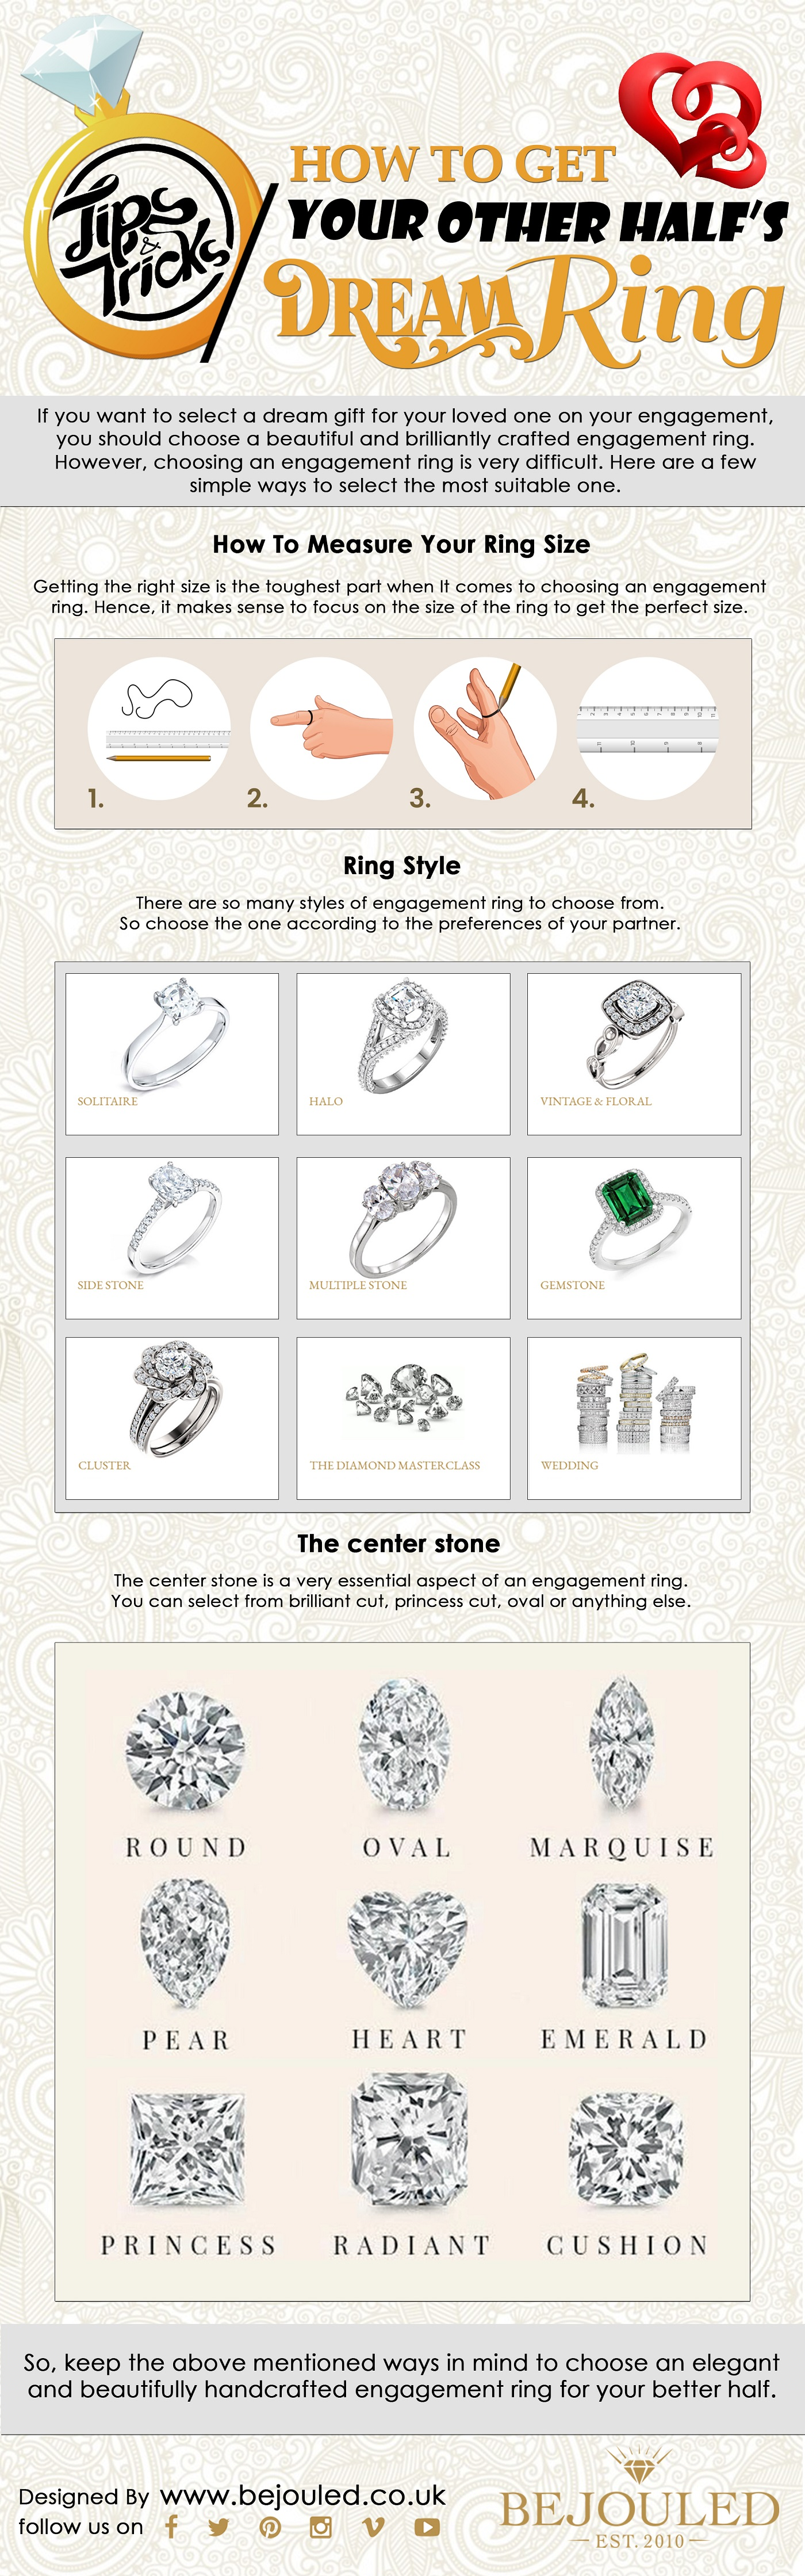 Tips & Tricks: How to Get your Other Half's Dream Ring